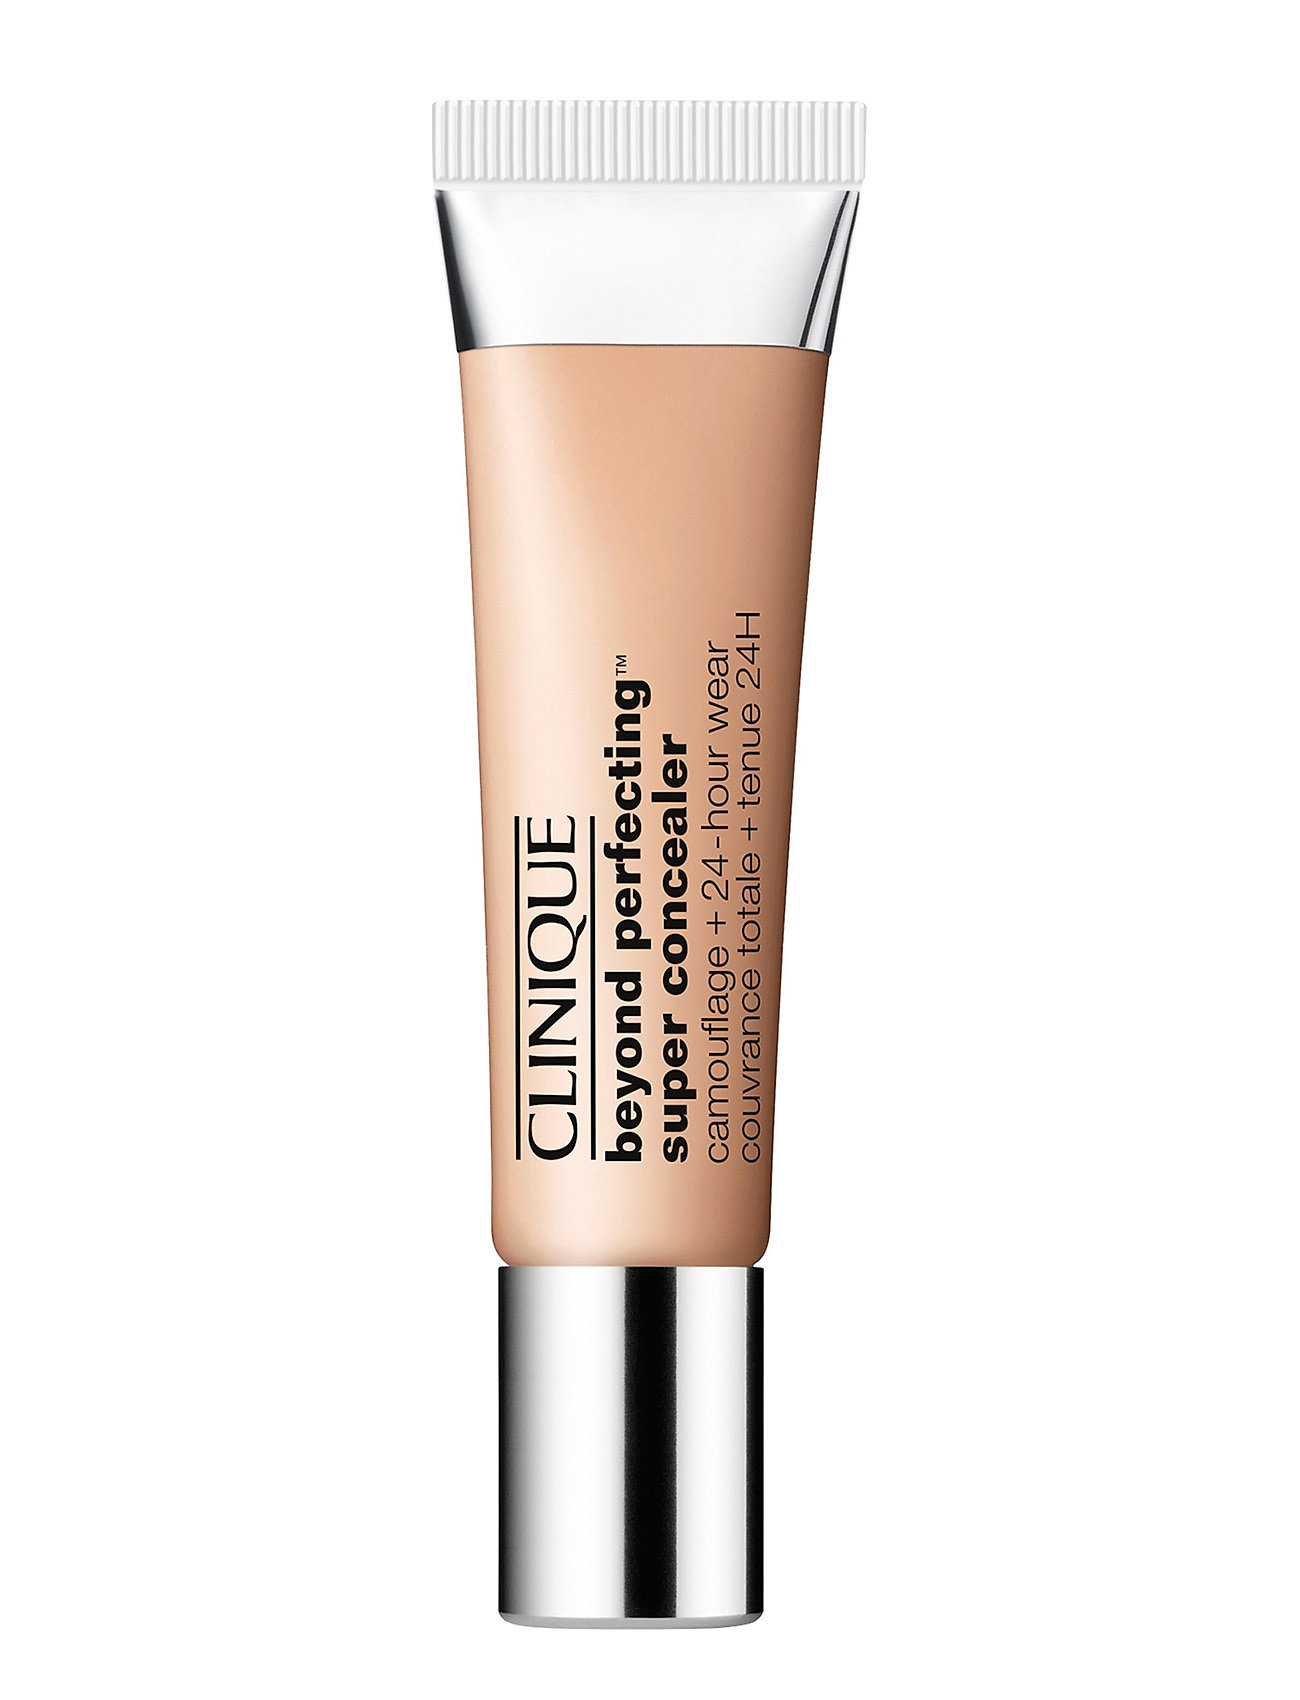 Clinique Beyond Perfecting Super Concealer 10 Camouflage + 24Hr Wear - MODERATELY FAIR 10